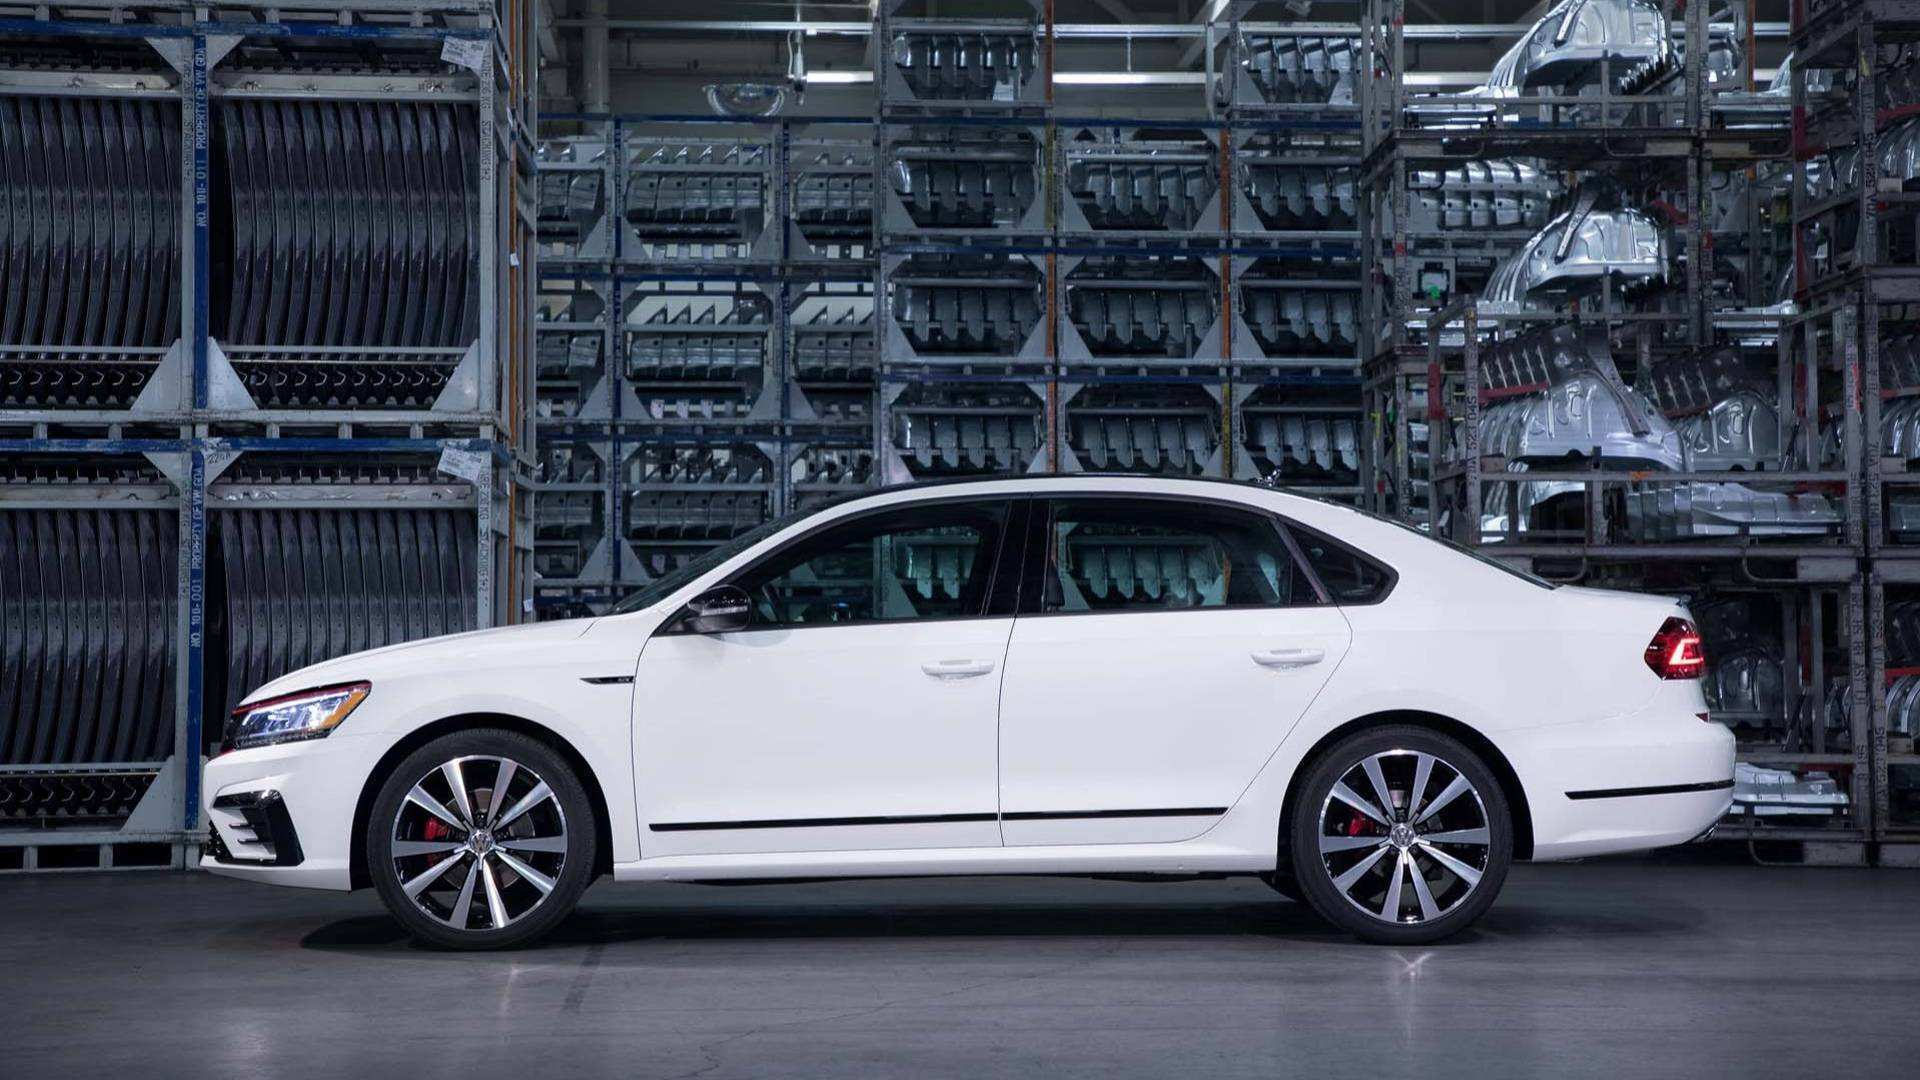 36 Concept of The 2019 Volkswagen Passat Usa Release Specs And Review Overview with The 2019 Volkswagen Passat Usa Release Specs And Review